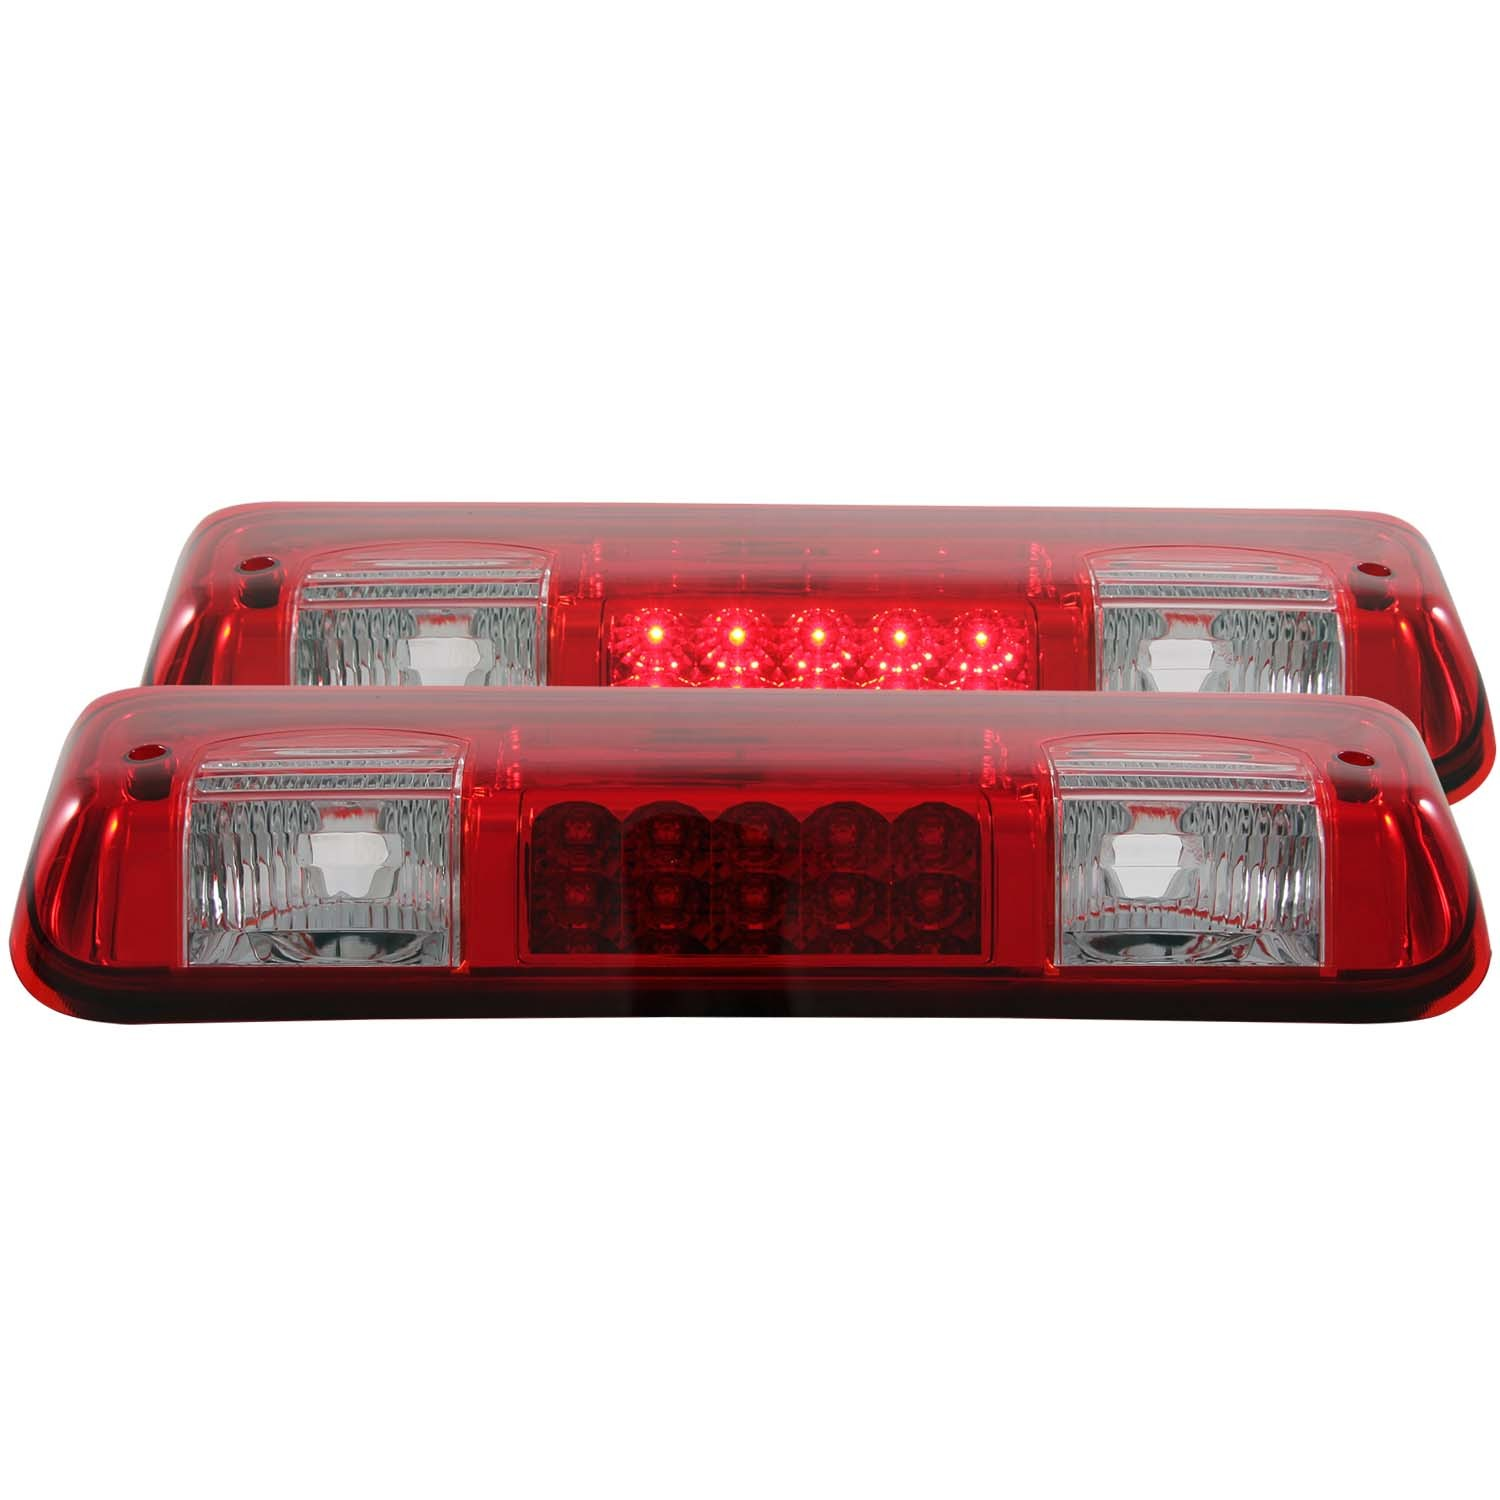 Ford F-150 2004-2008 Third Brake Tail Light LED Lamp Smoke Lens